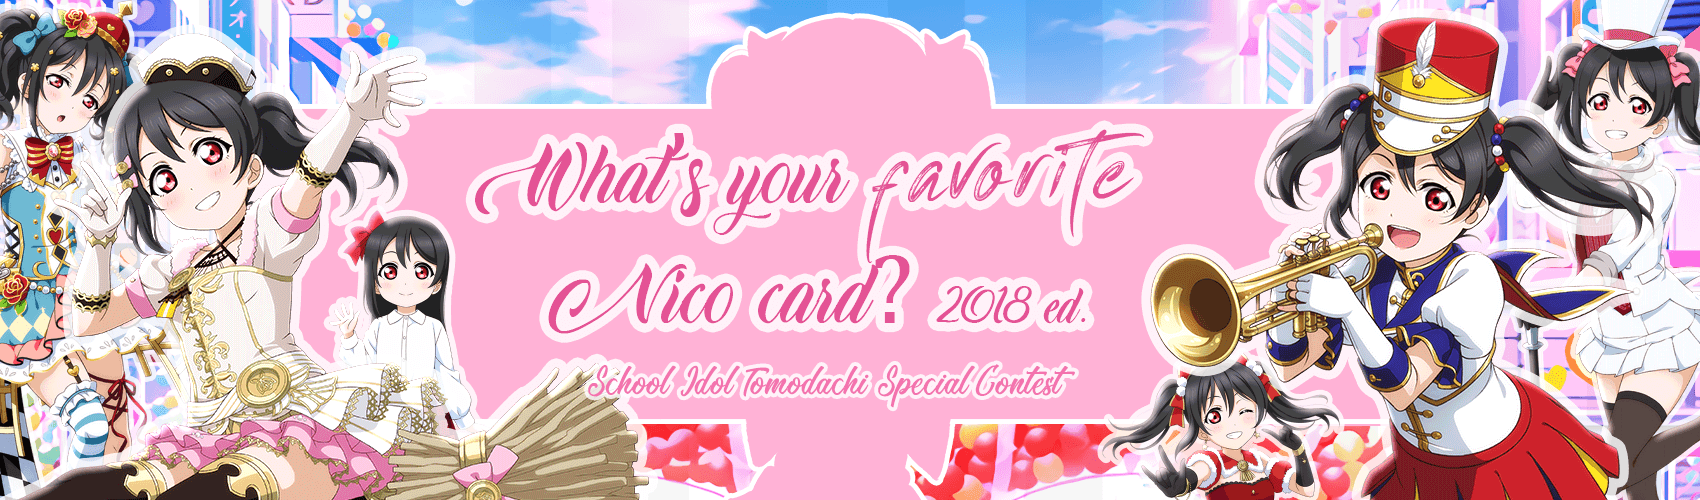 What's your favorite Nico card? 2018 ed.